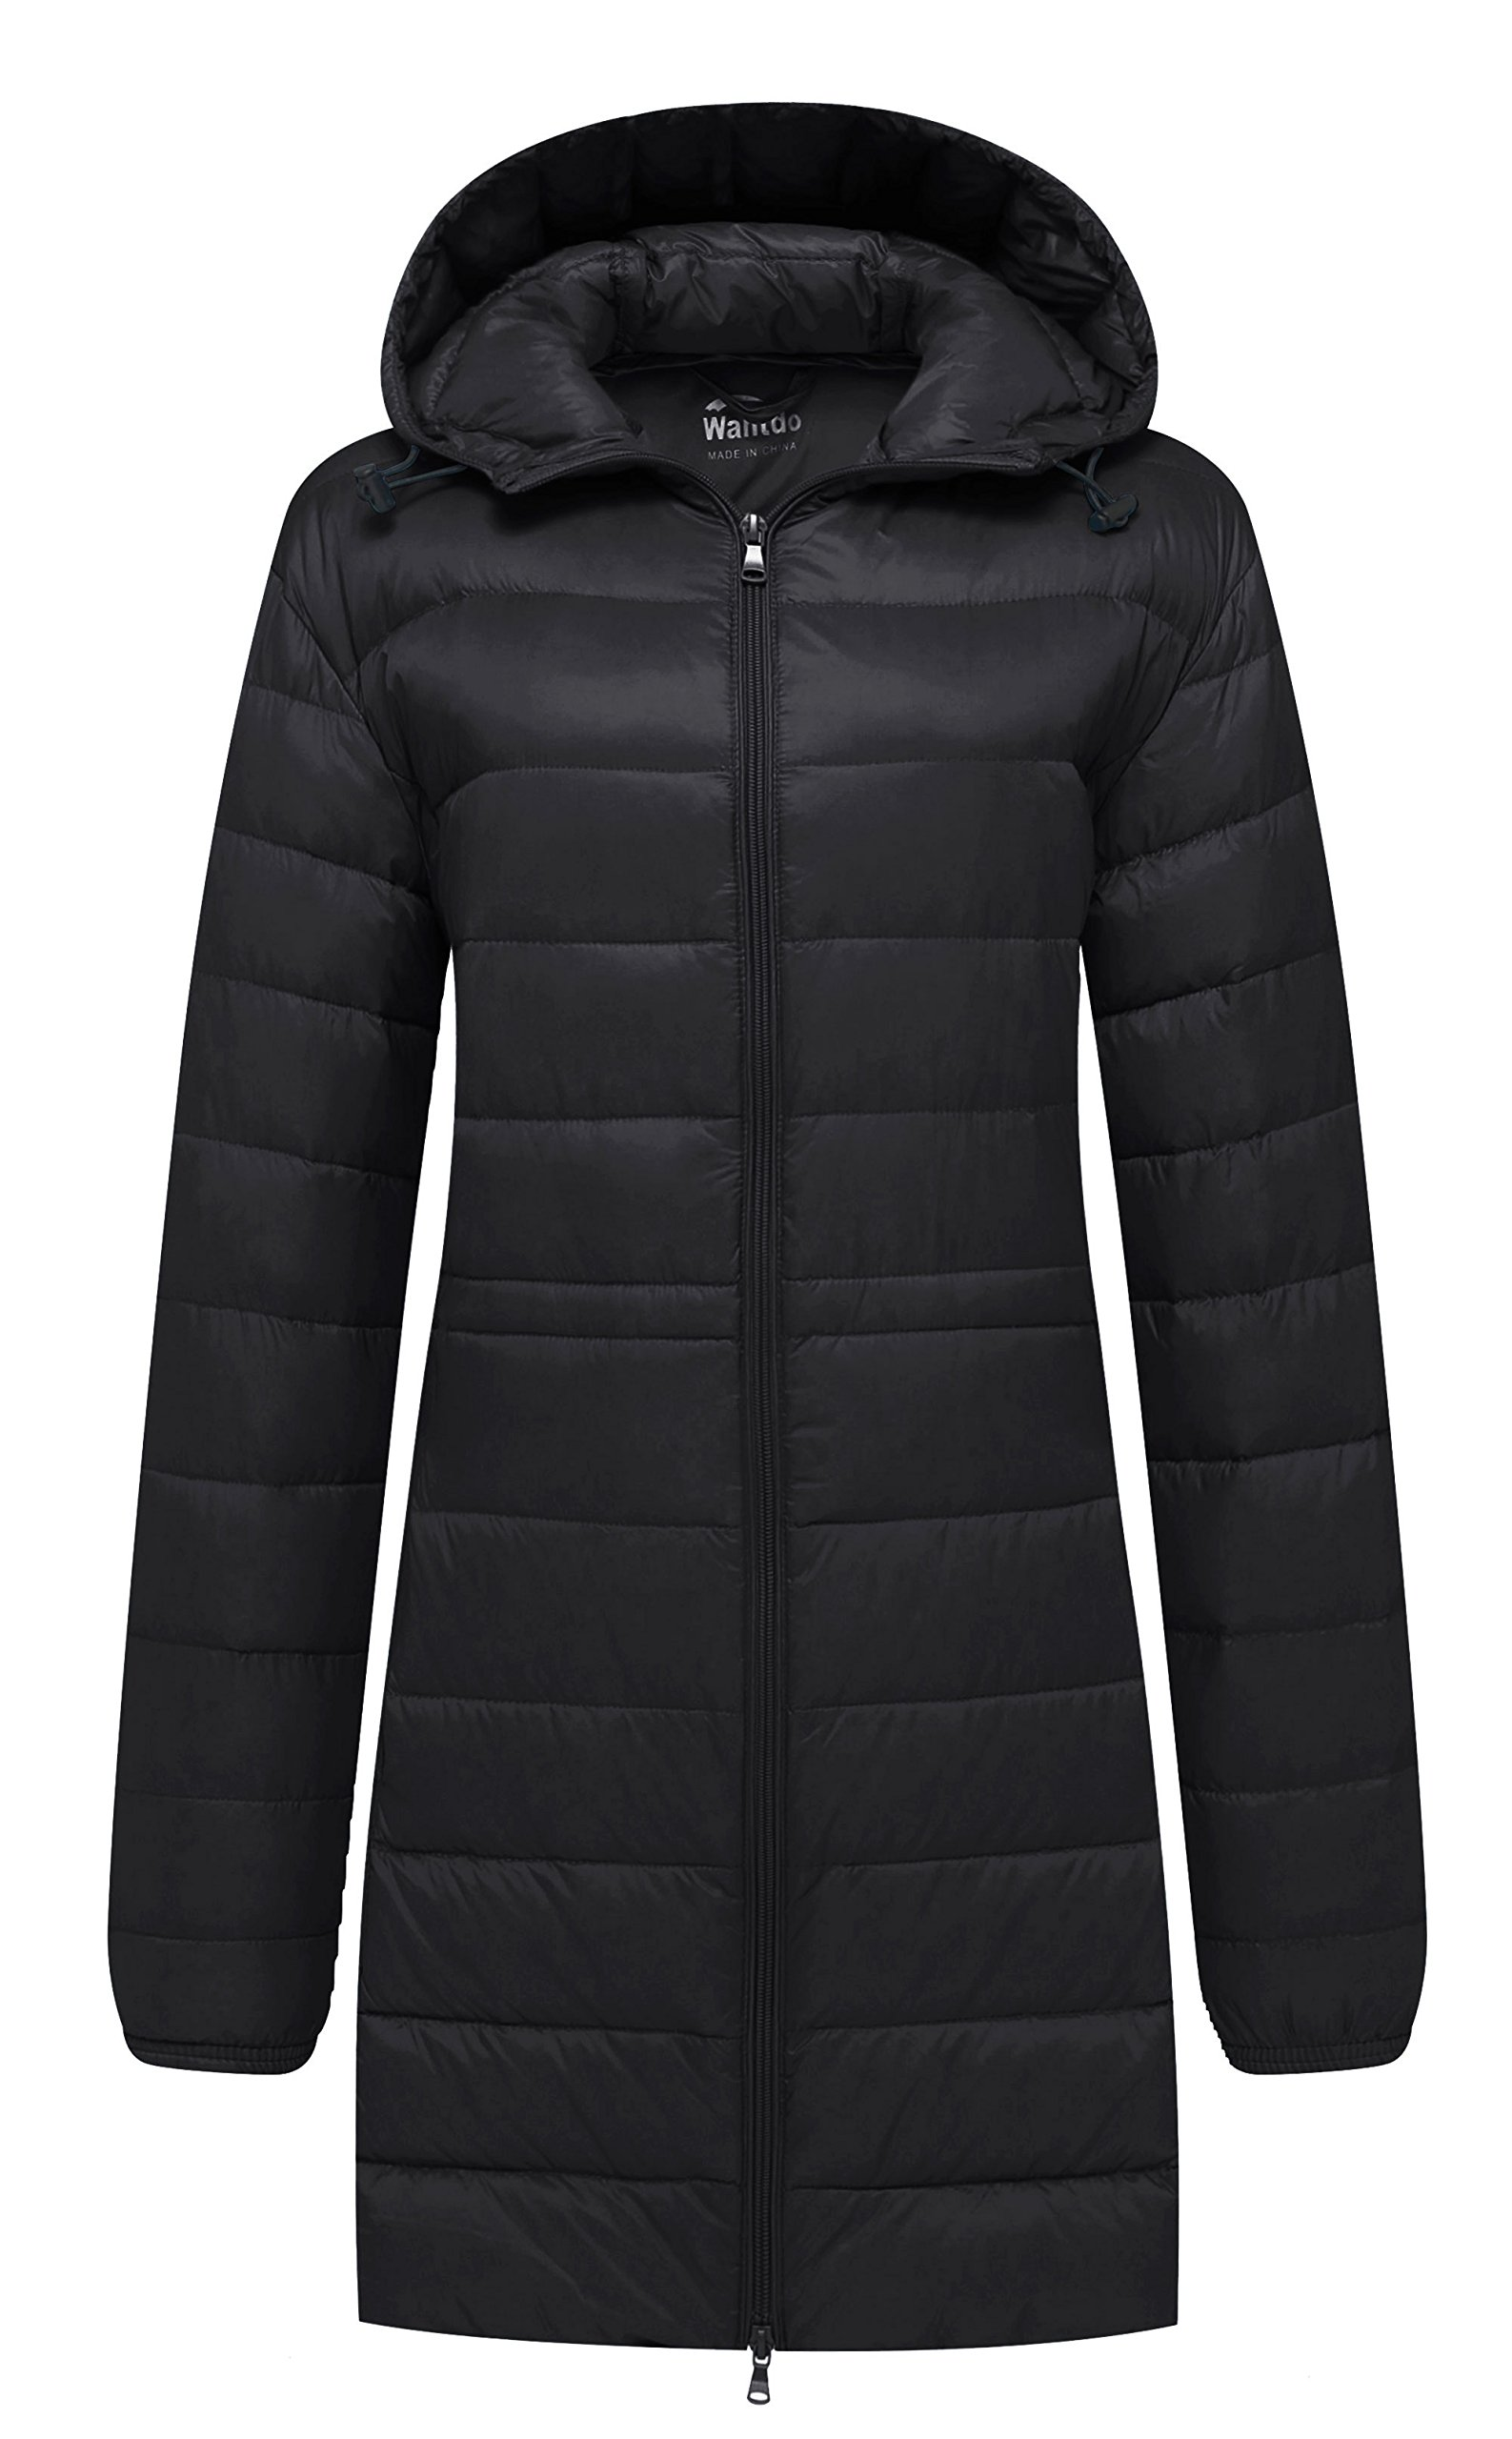 Wantdo Women's Hooded Packable Ultra Light Weight Down Coat, Black, Large